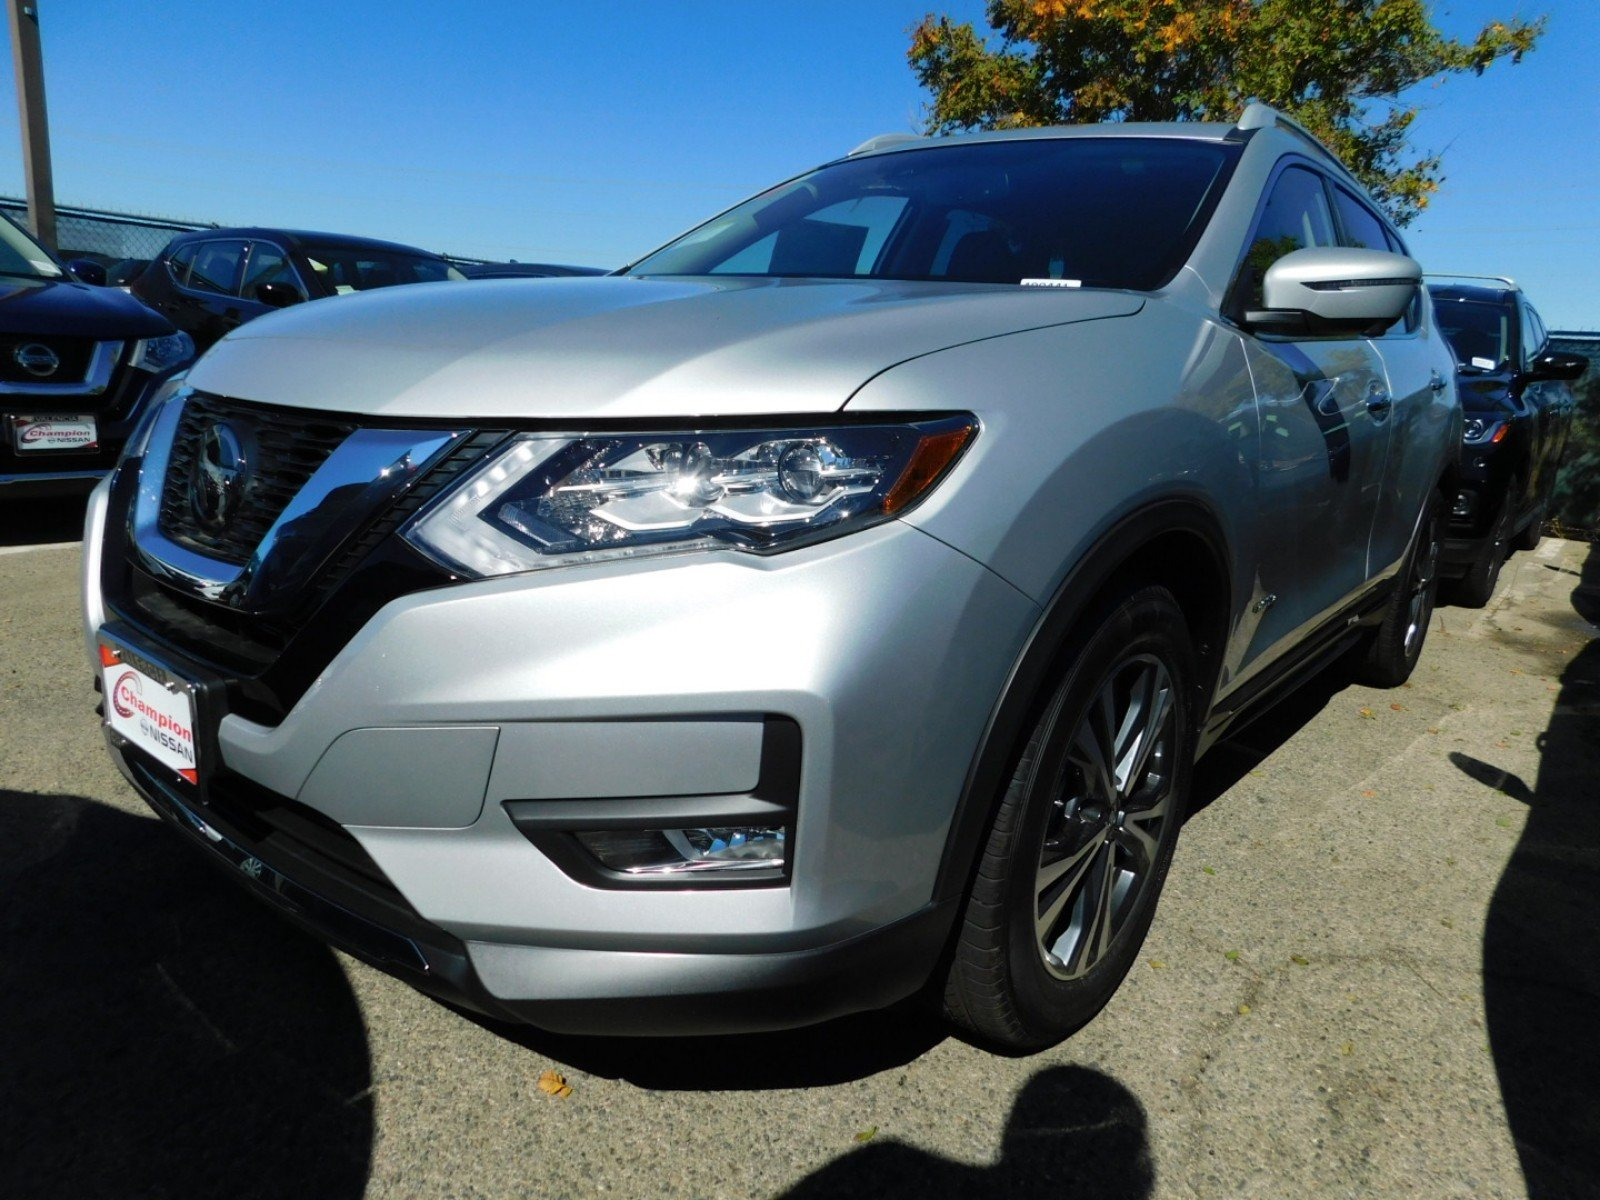 Nissan Rogue Owners Manual: Technical and consumer information